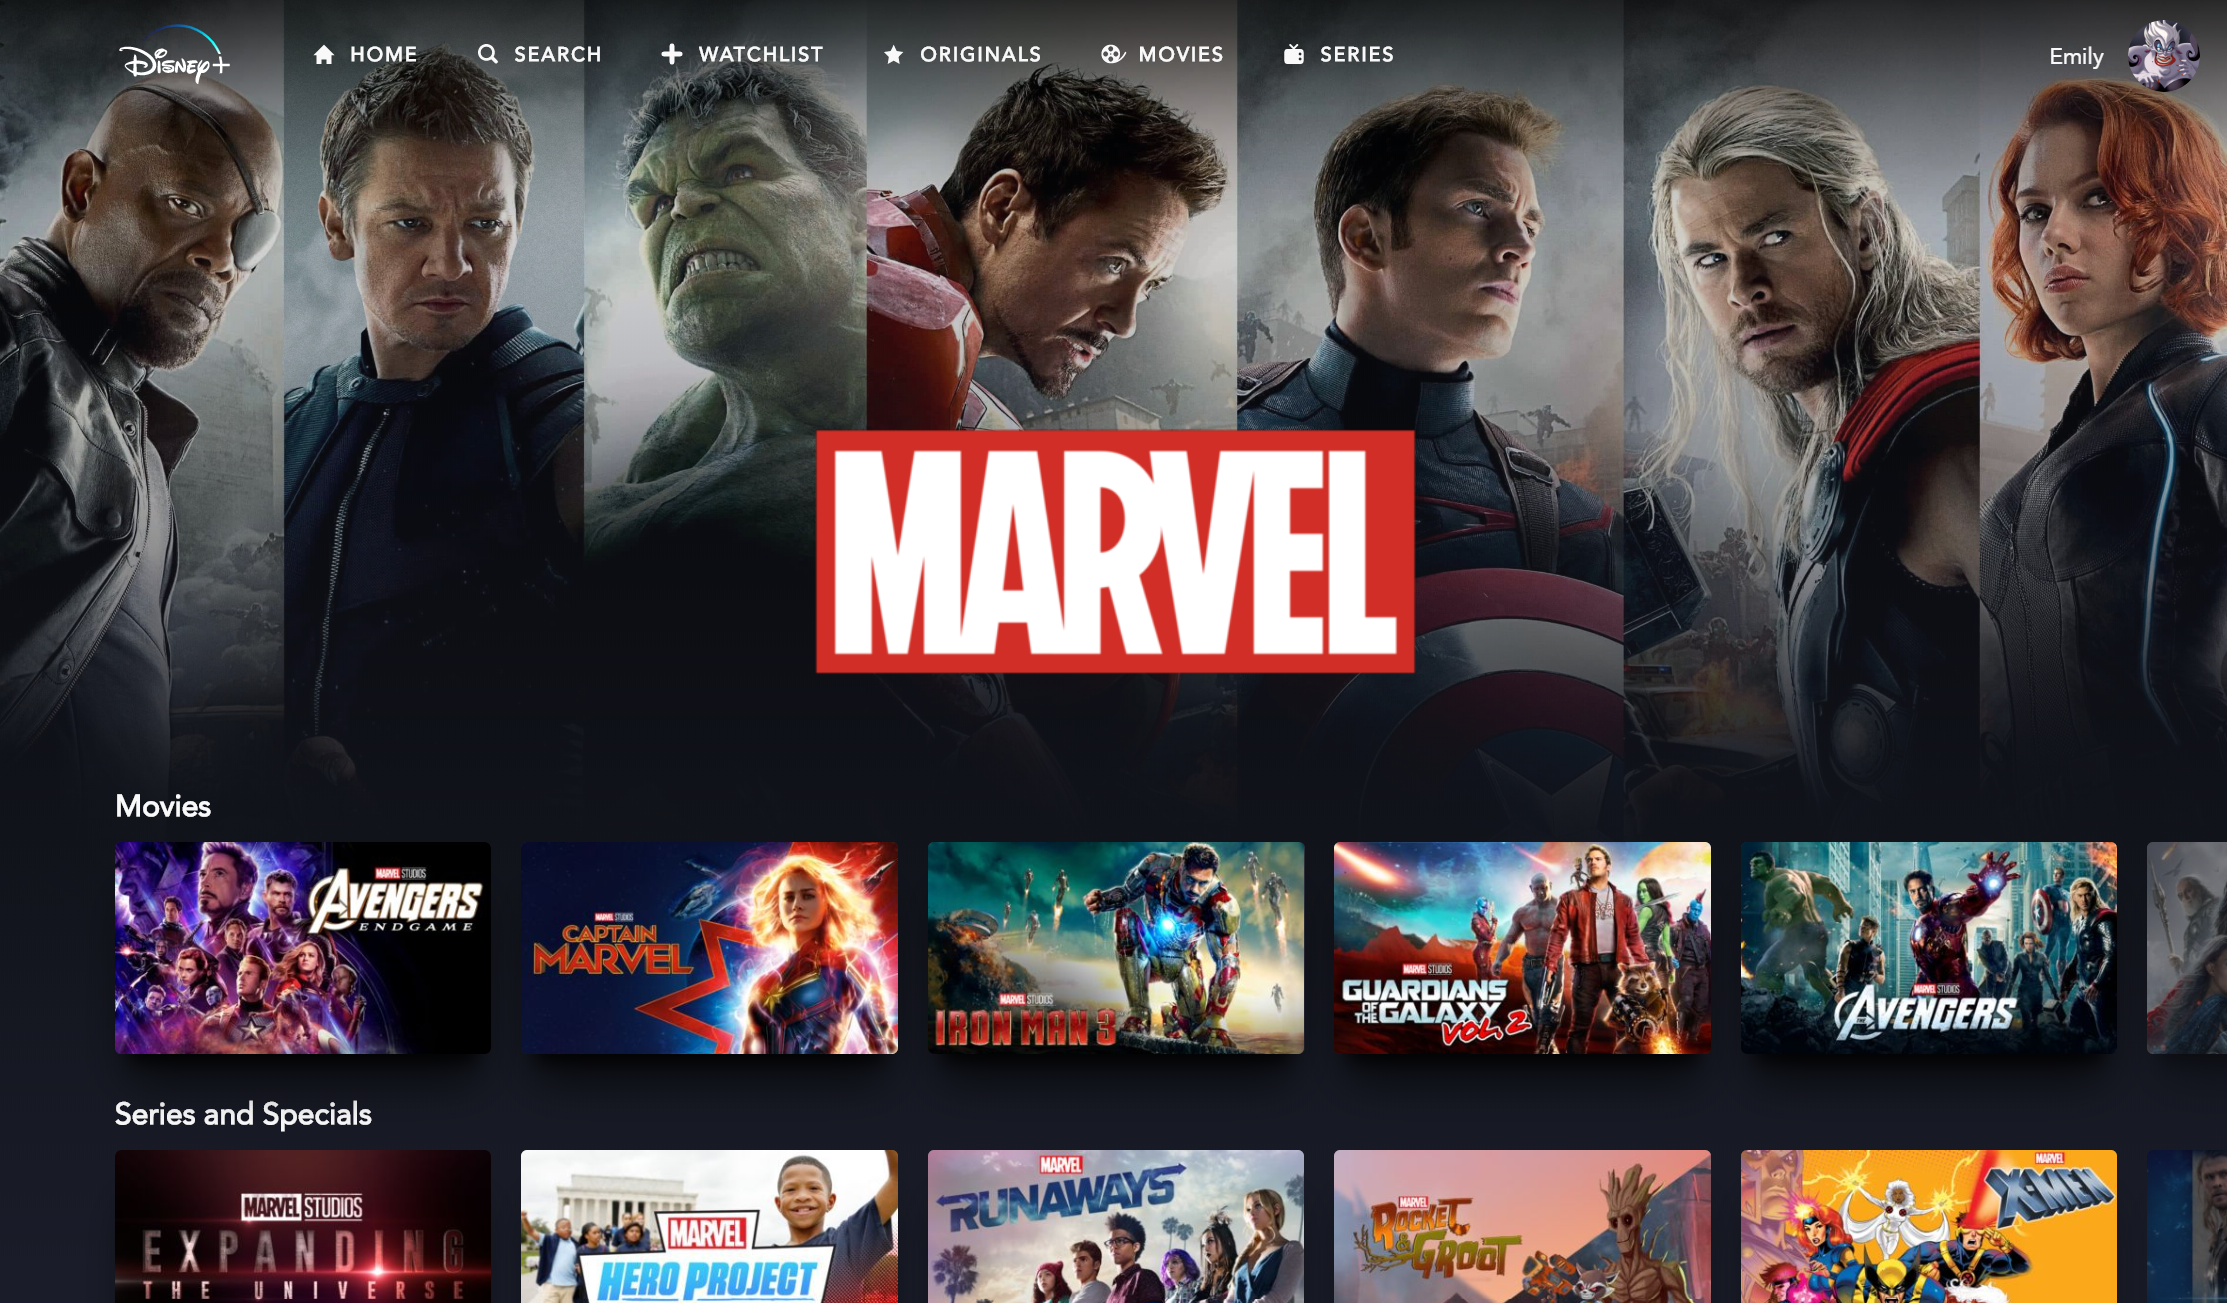 A screenshot of the Marvel landing page.